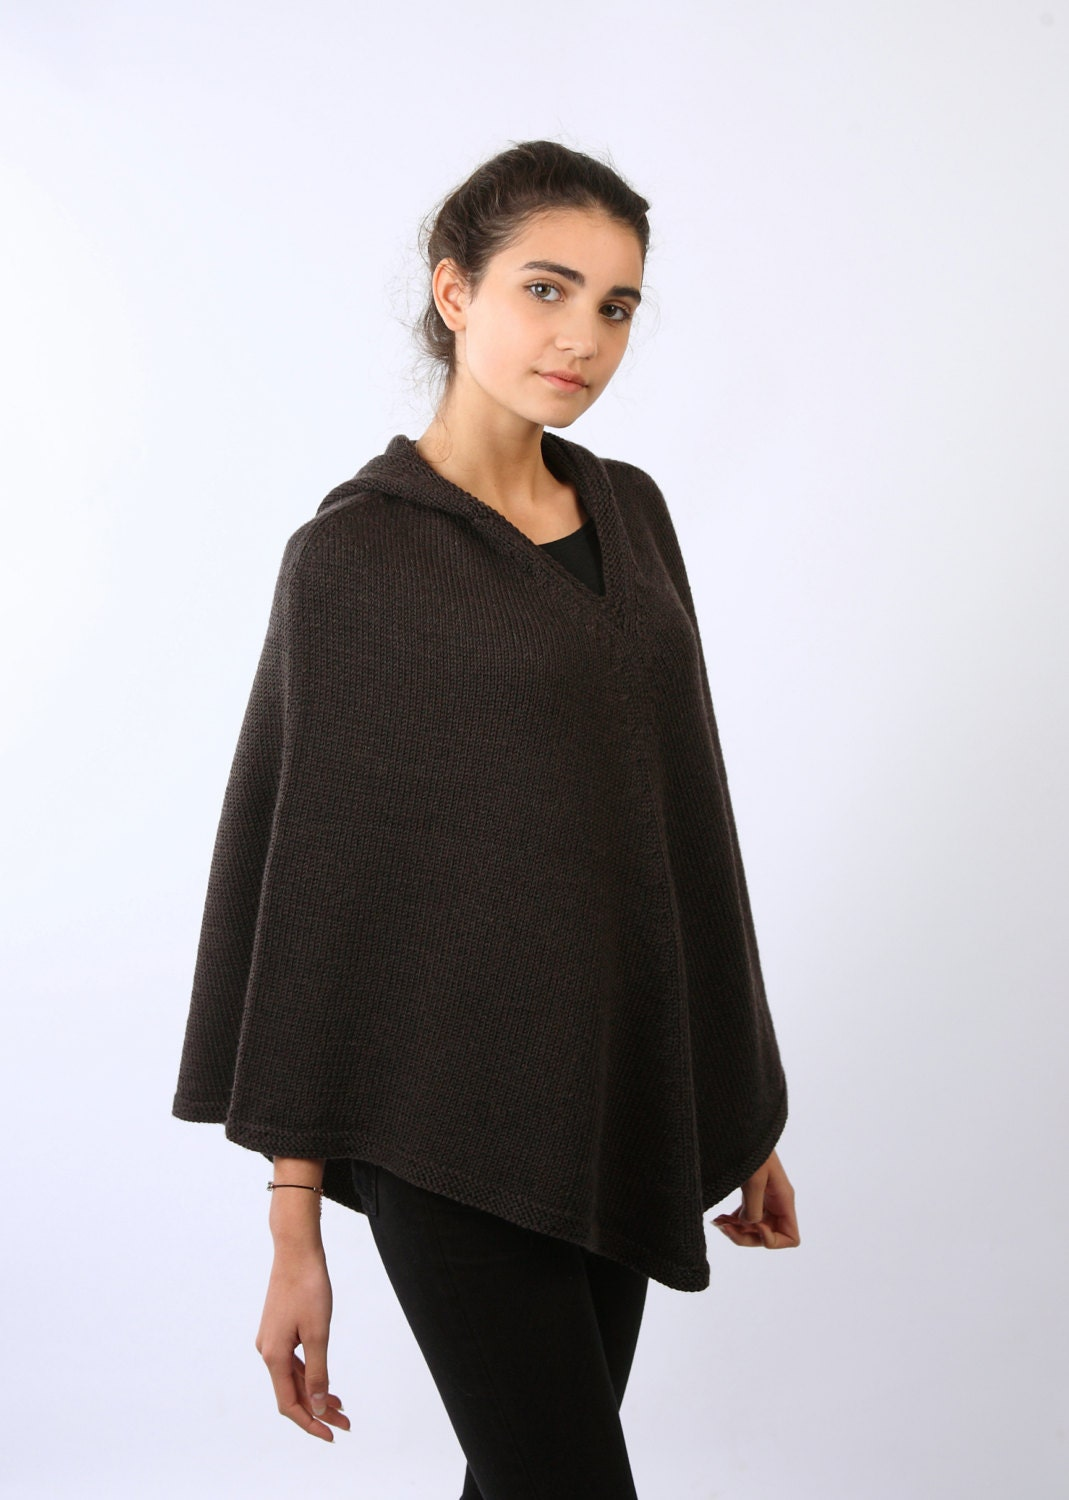 Find great deals on eBay for hooded poncho. Shop with confidence.